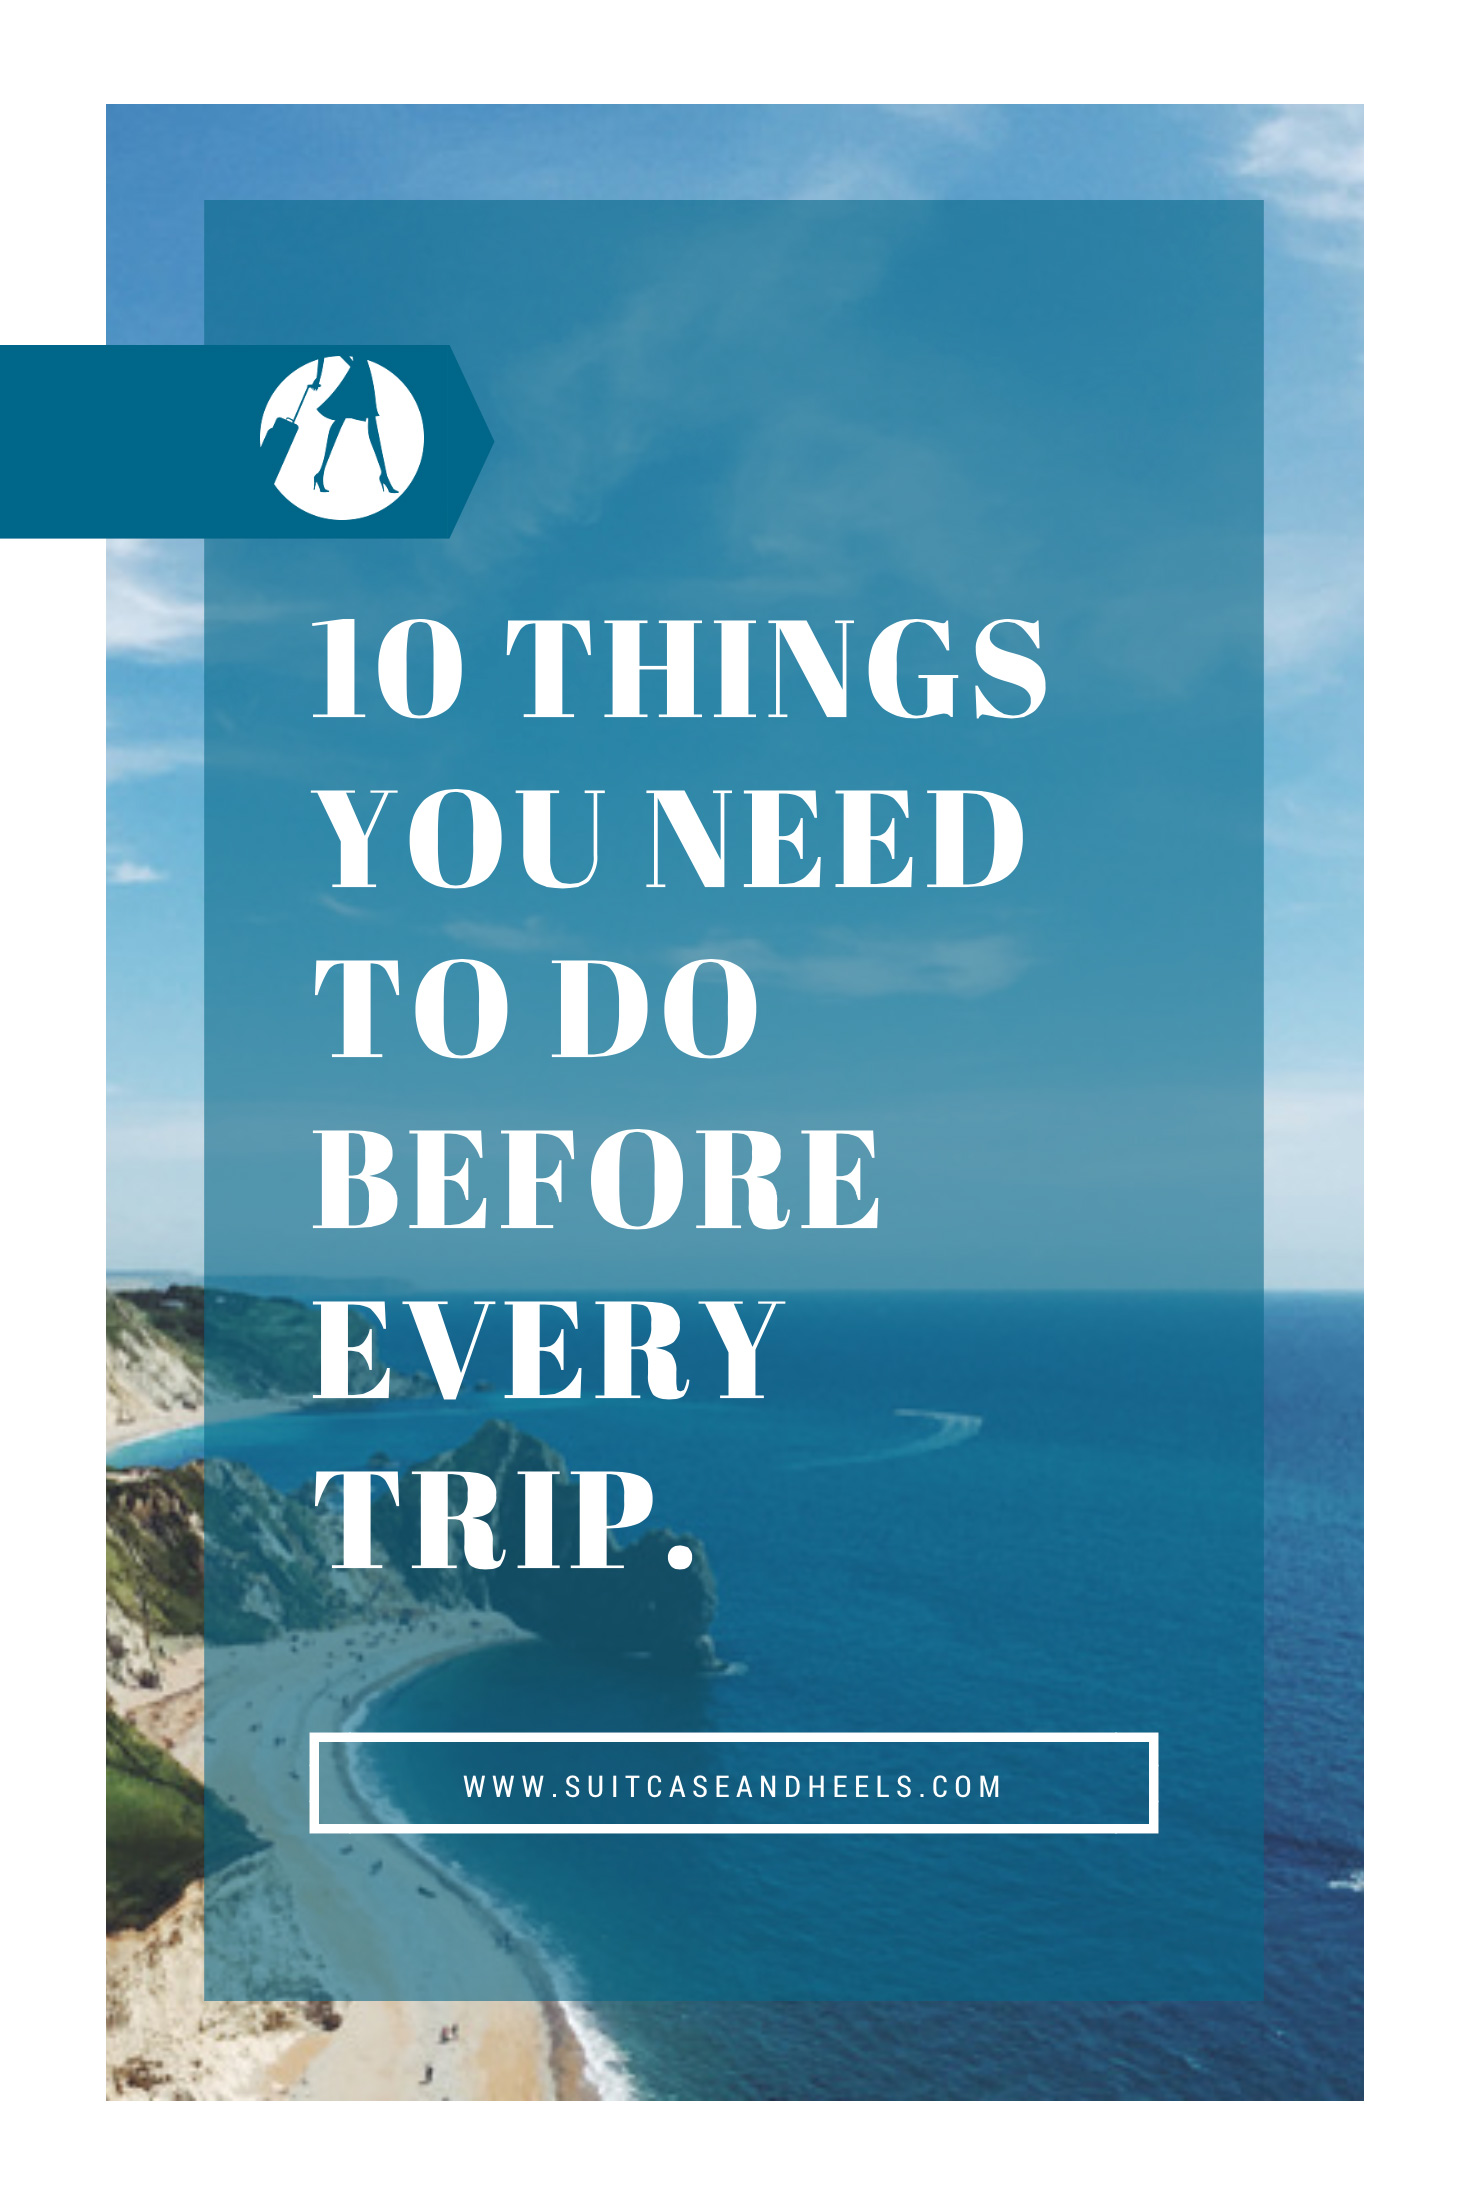 10 Things to Do Before Every Trip. | SuitcaseandHeels.com